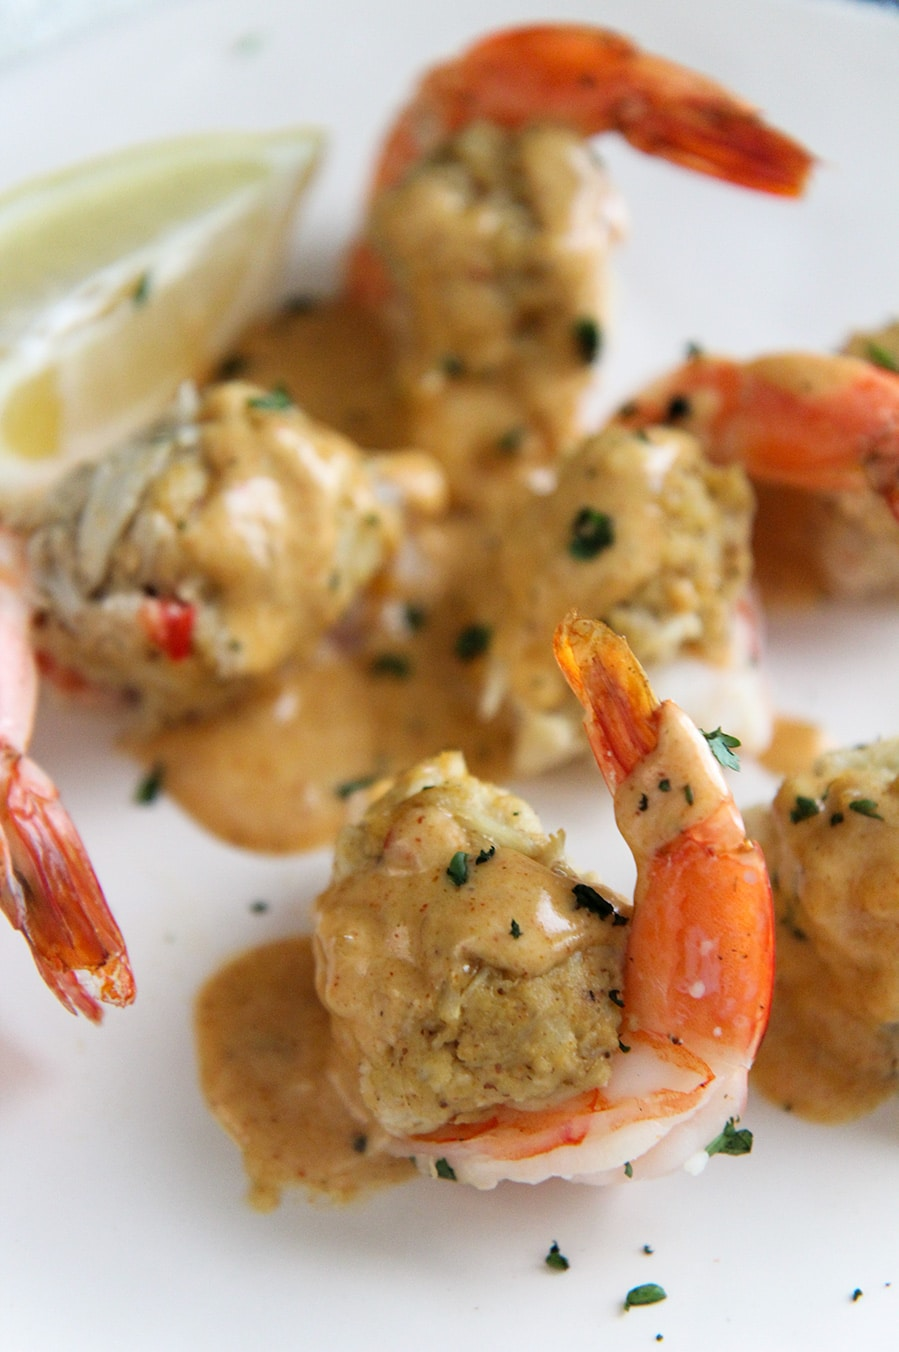 crab stuffed shrimp up close with sauce and a lemon wedge on the side.